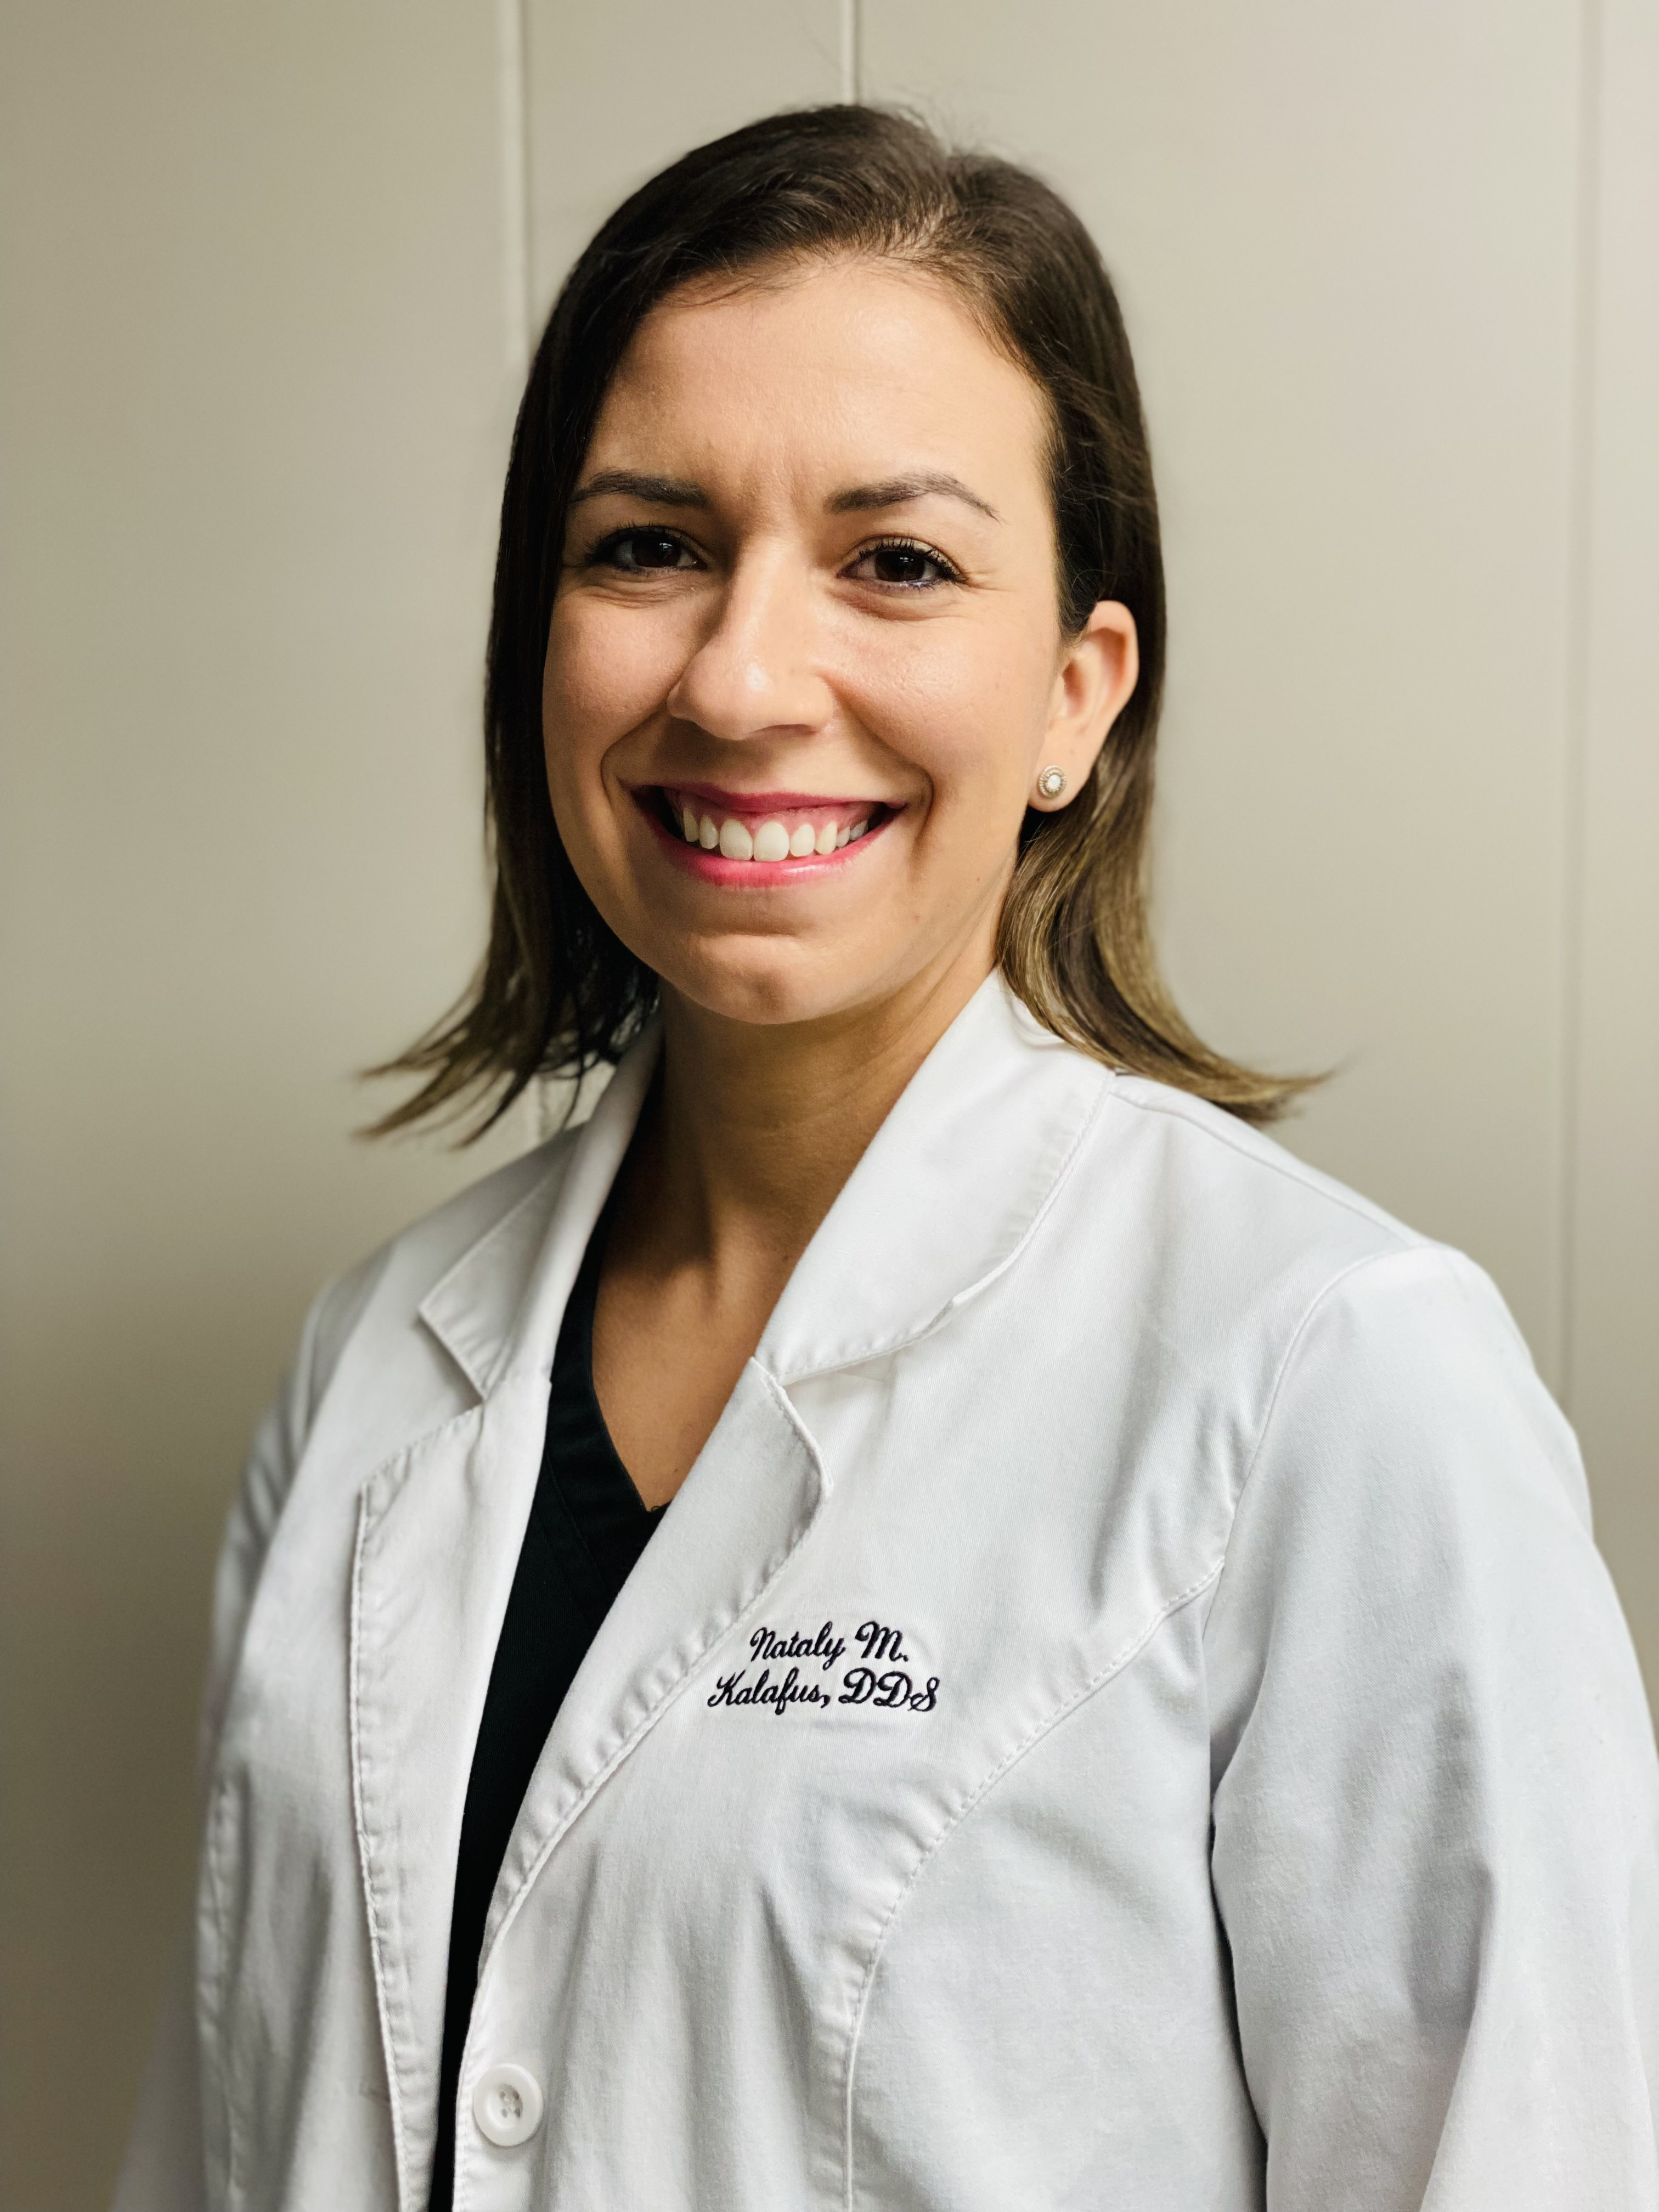 Doctor Nataly Kalafus. She is smiling broadly, and is a Latin woman with dark eyes, shoulder-length brown hair, and diamond stud earrings. She is wearing a lab coat and a black shirt.